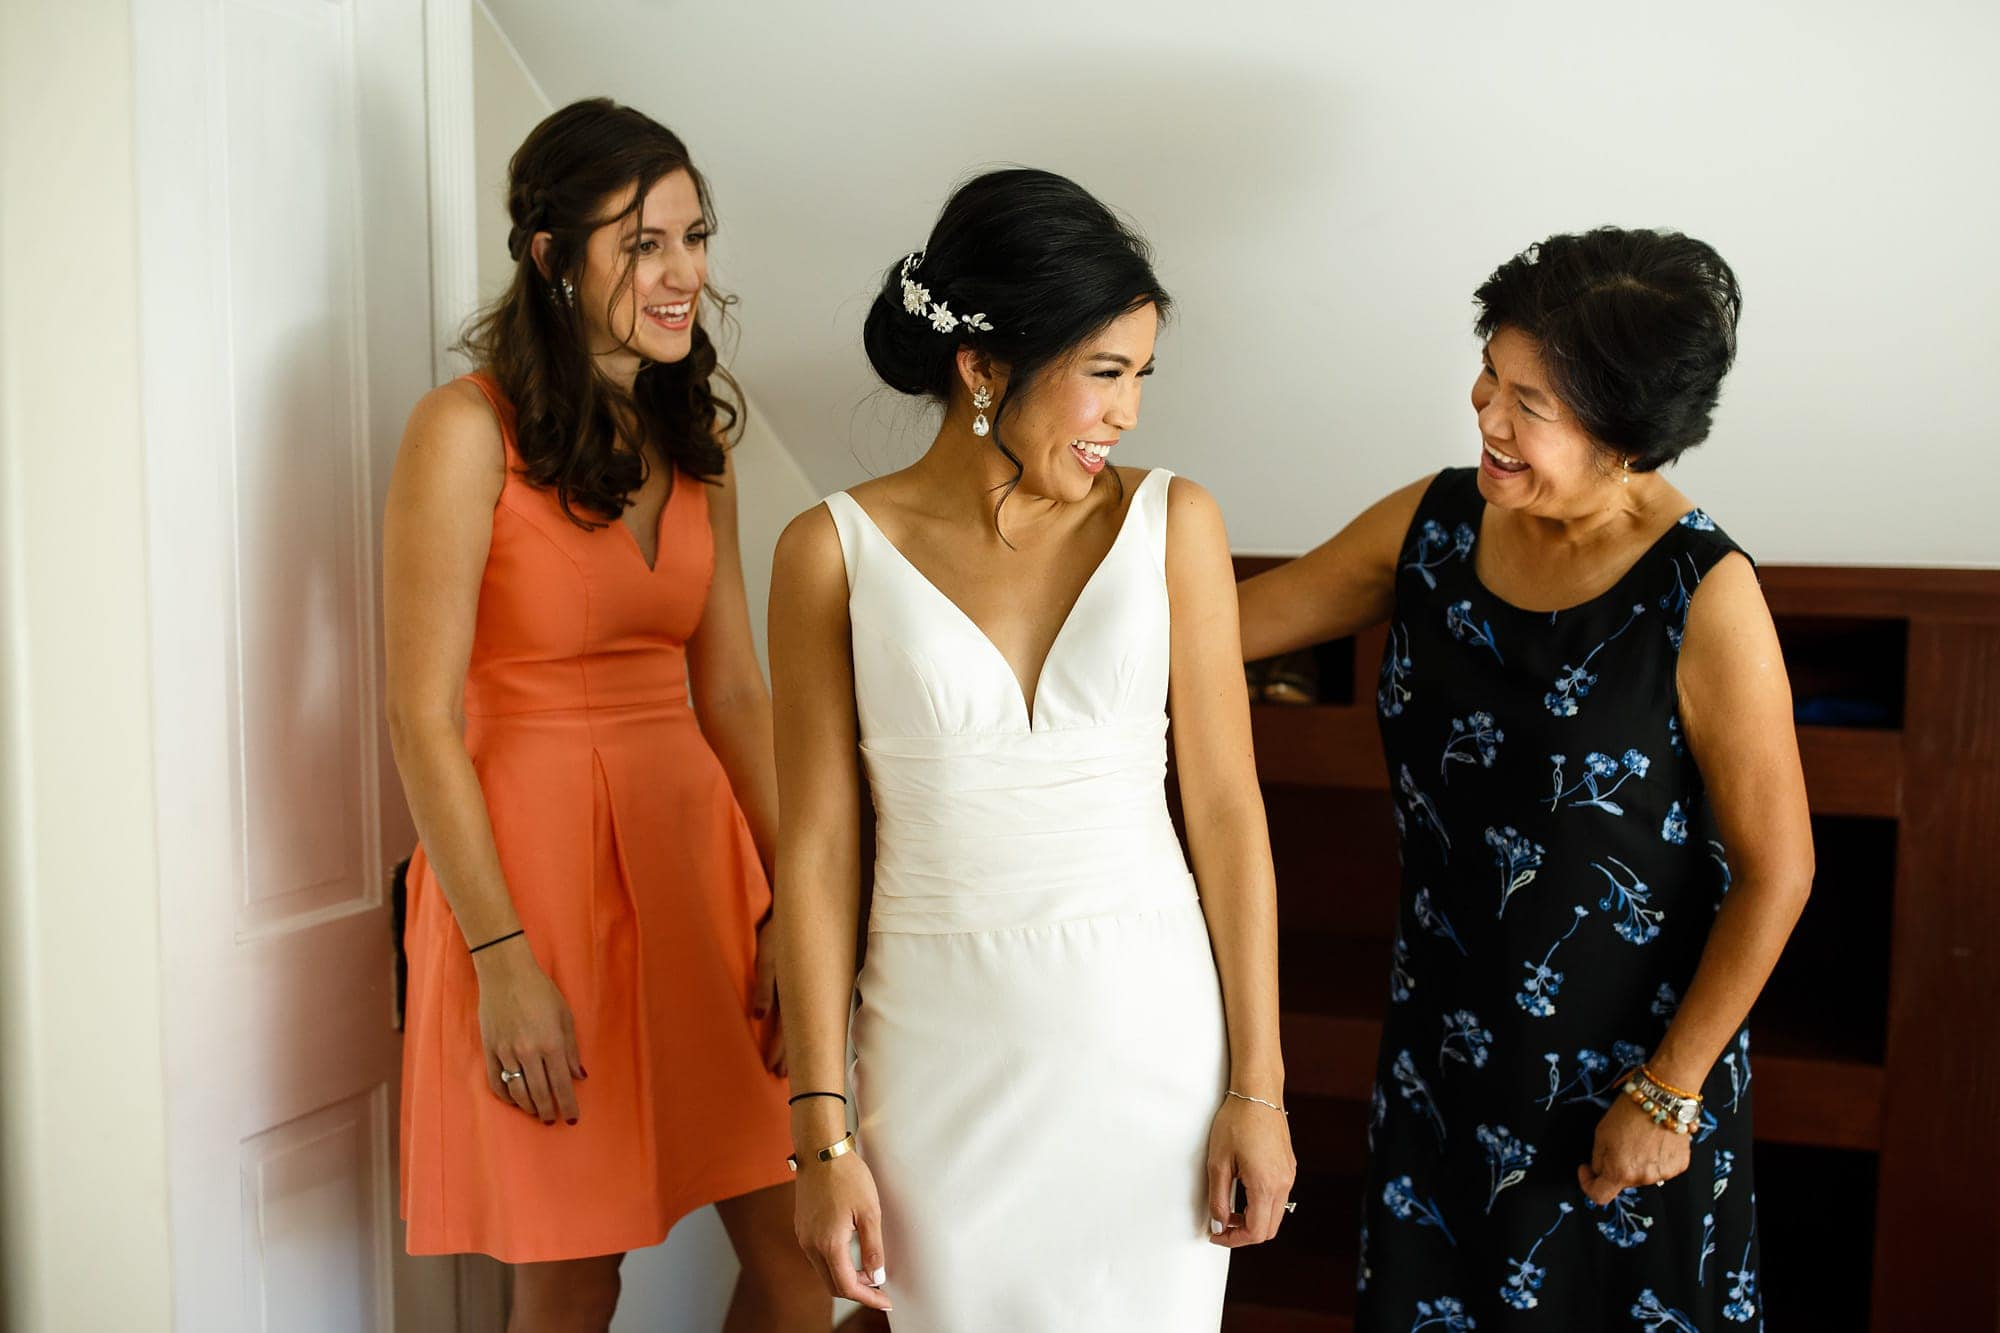 Megan shares a laugh with her mother while getting dressed with her maid of honor before her wedding in Boulder at Rembrandt Yard